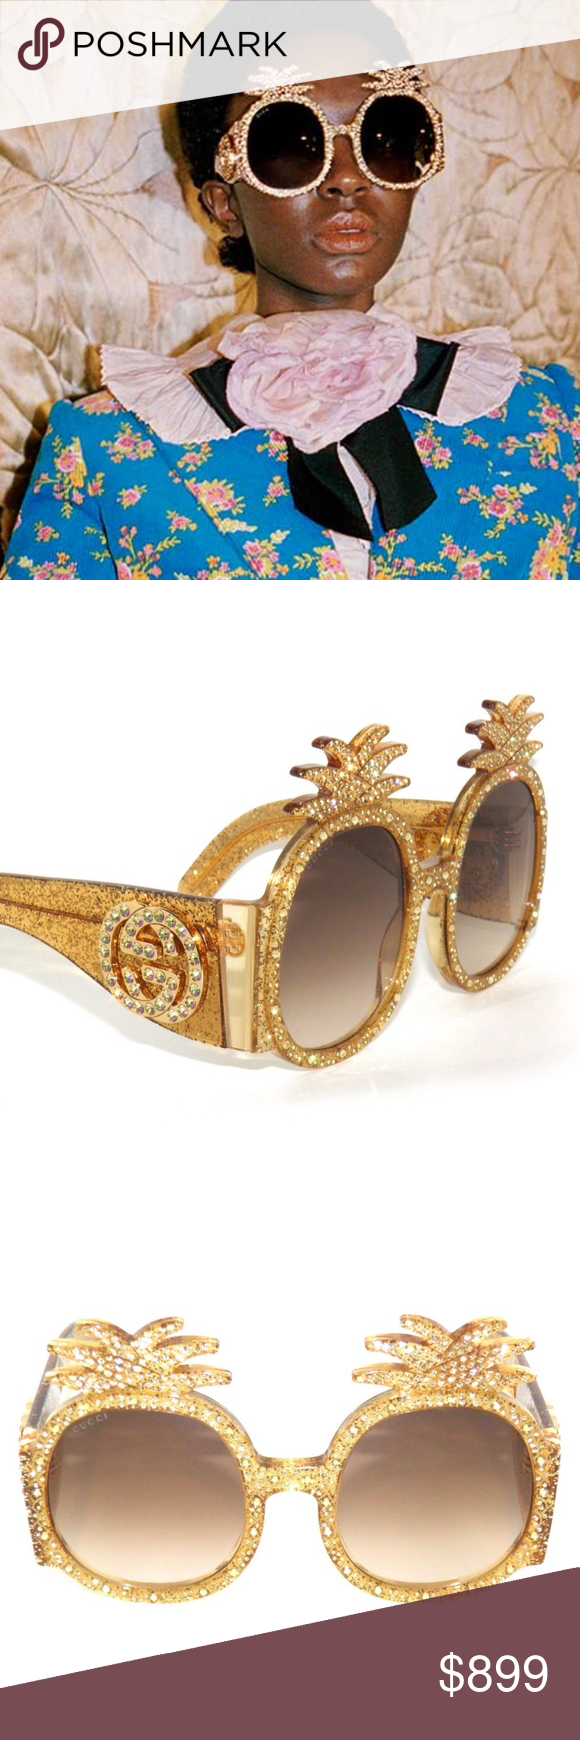 b0a82a51ec8 GUCCI GG0150S PINEAPPLE CRYSTALS GOLD SUNGLASSES GUCCI GG0150S PINEAPPLE  CRYSTALS GOLD BROWN 001 SunglaSSeS AUTHENTIC AND BRAND NEW IN ORIGINAL  PACKAGING ...